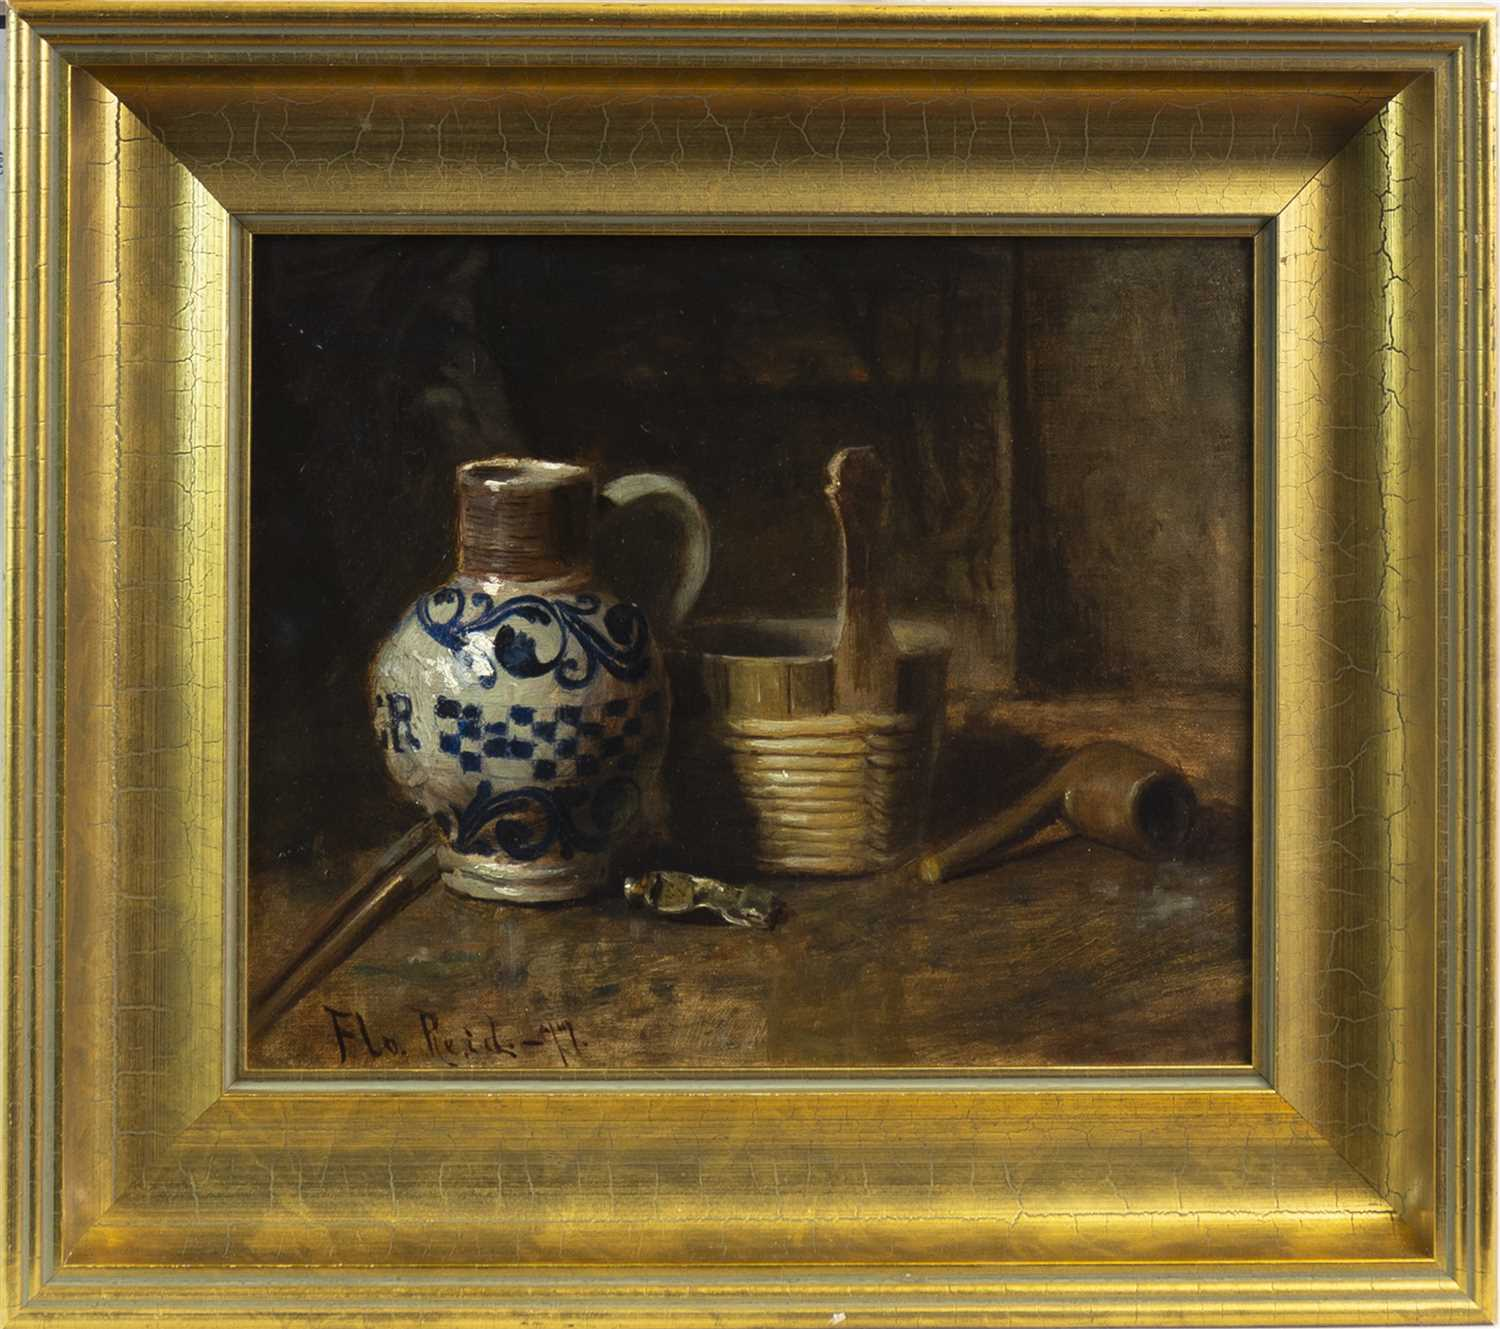 Lot 517-STILL LIFE, AN OIL BY FLORA MACDONALD REID